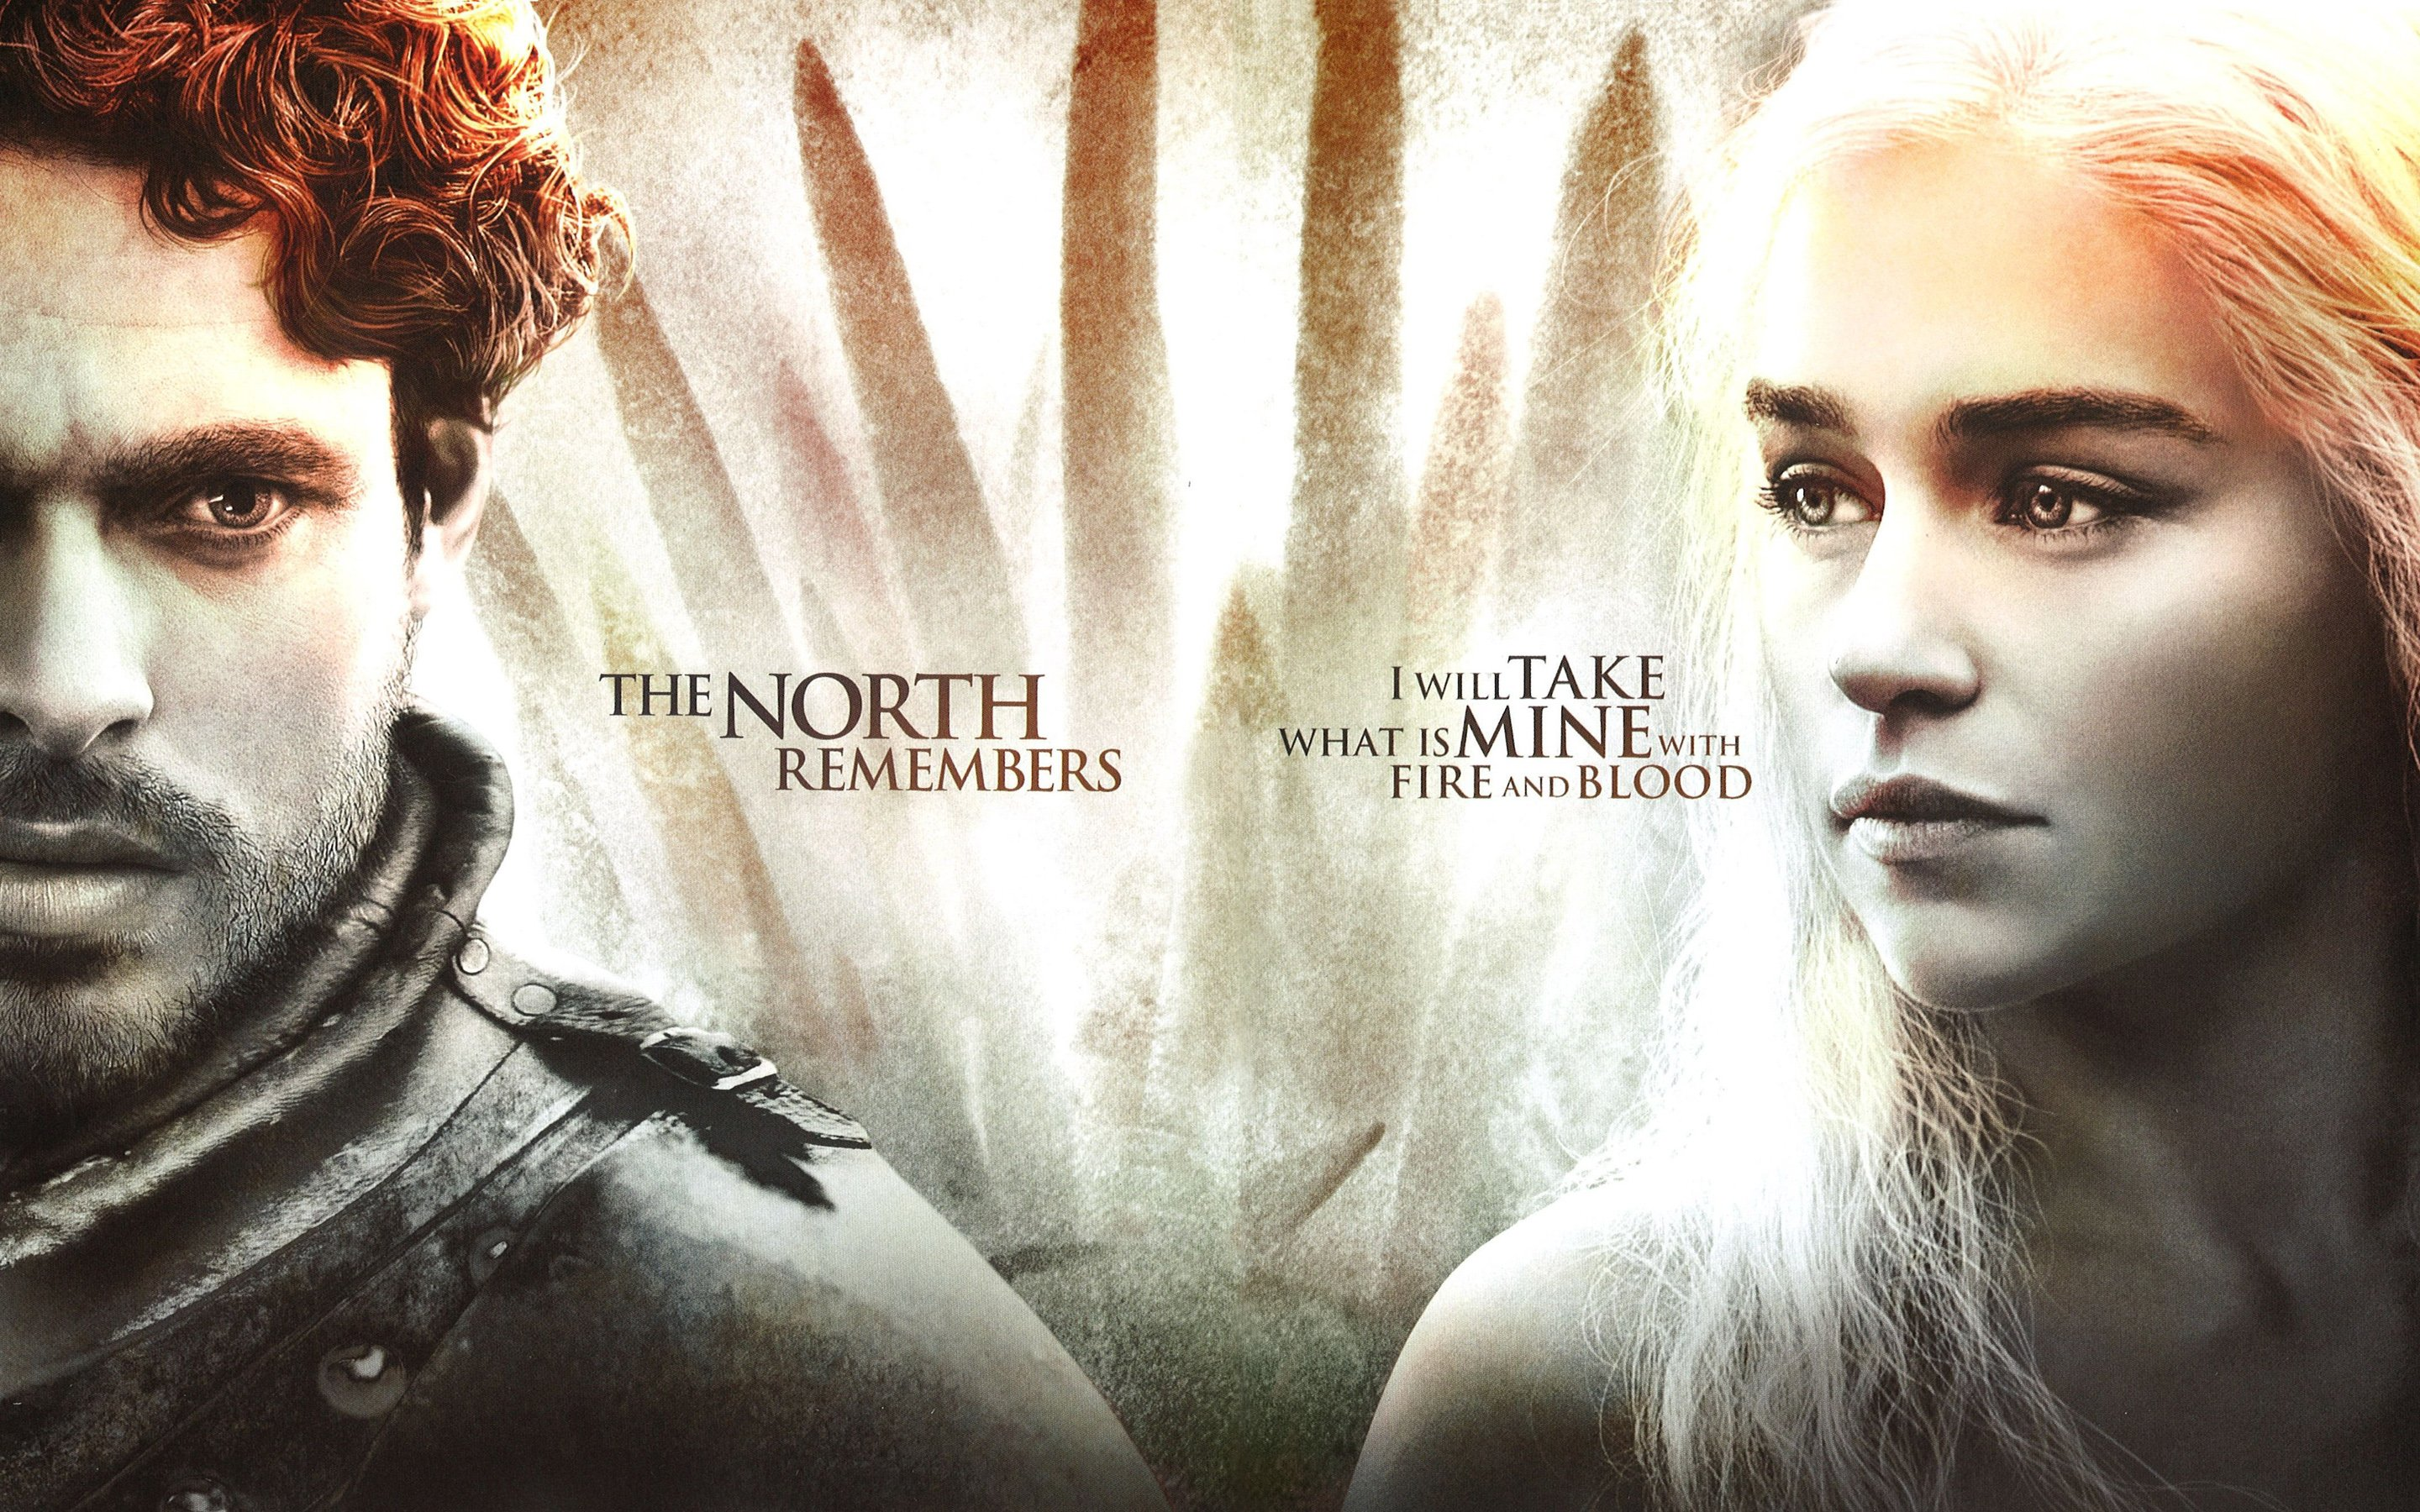 Game of Thrones The North Remembers Wallpaper hd background 2880x1800